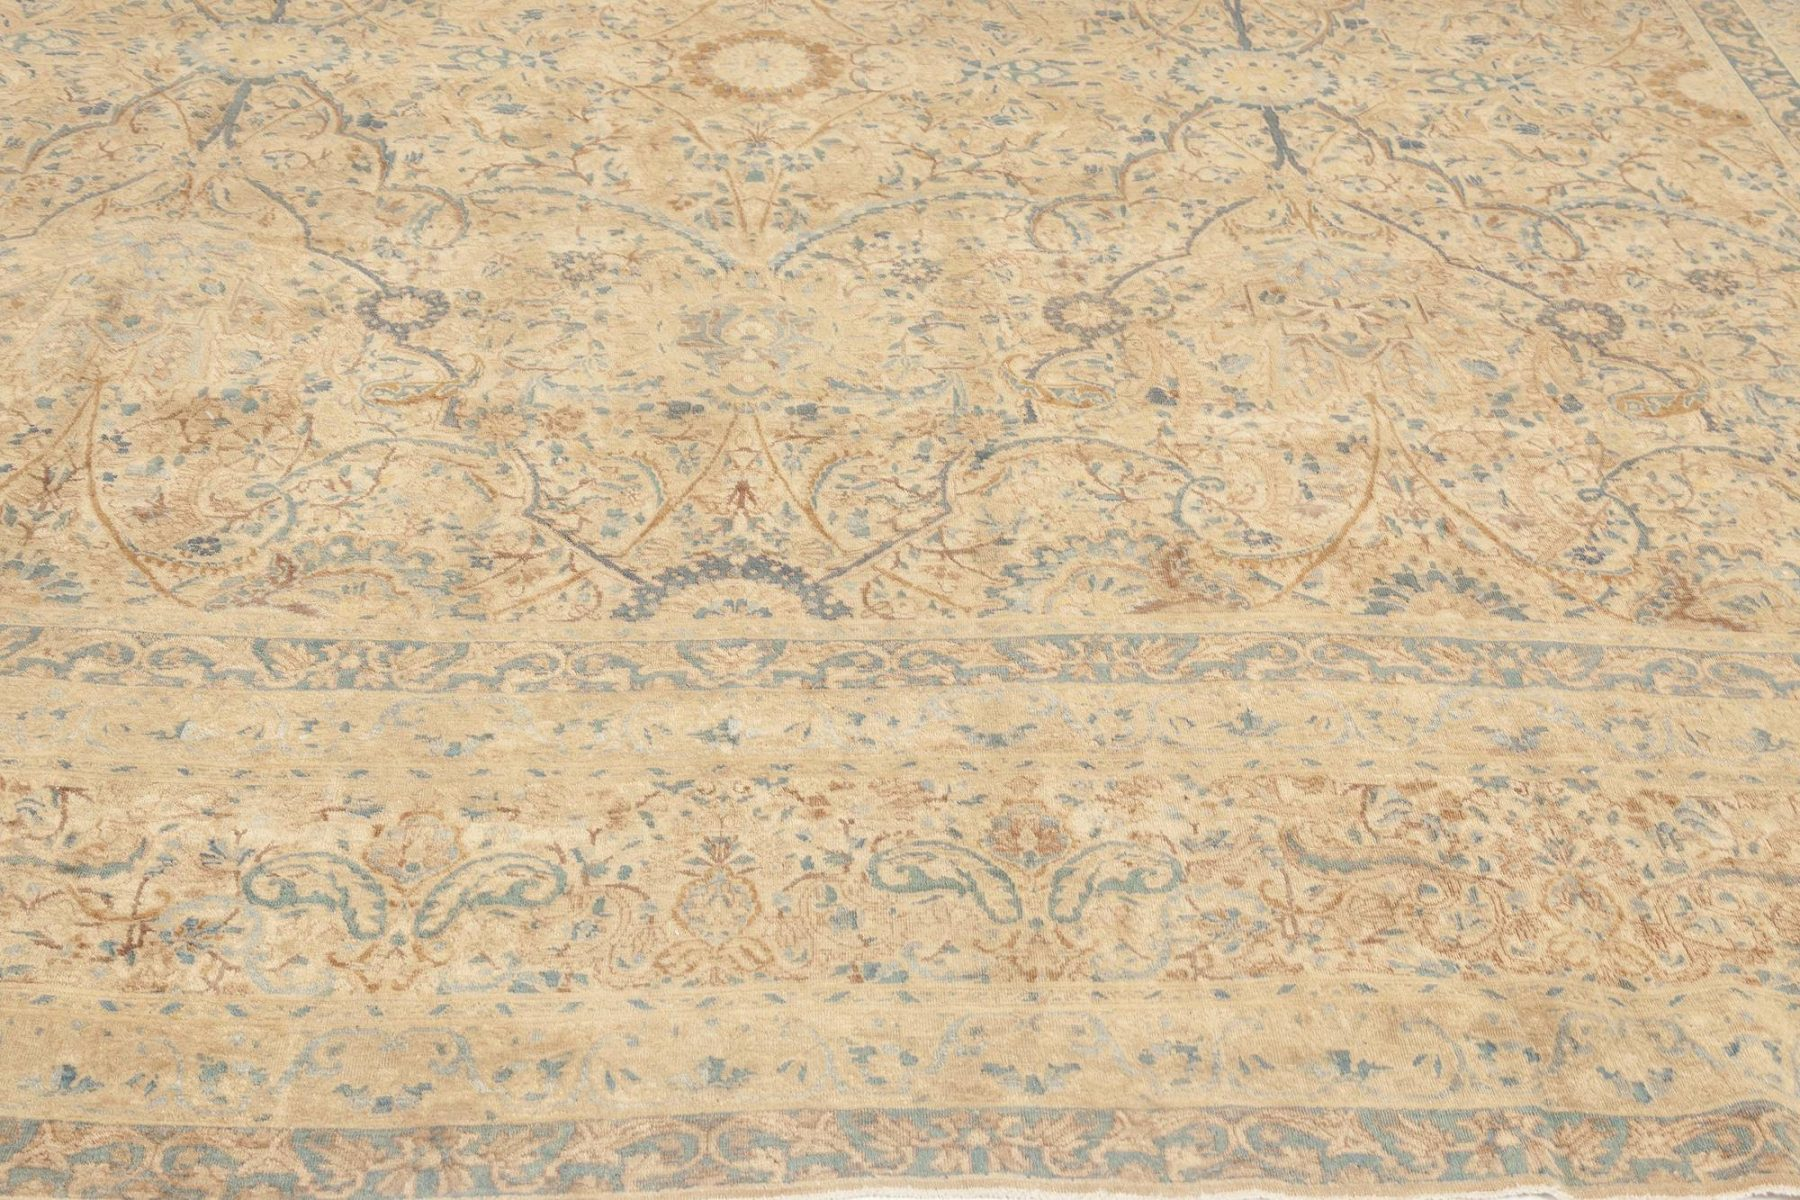 Antqiue Persian Kirman Orange, Beige & Blue Hand-knotted Wool Rug BB6900